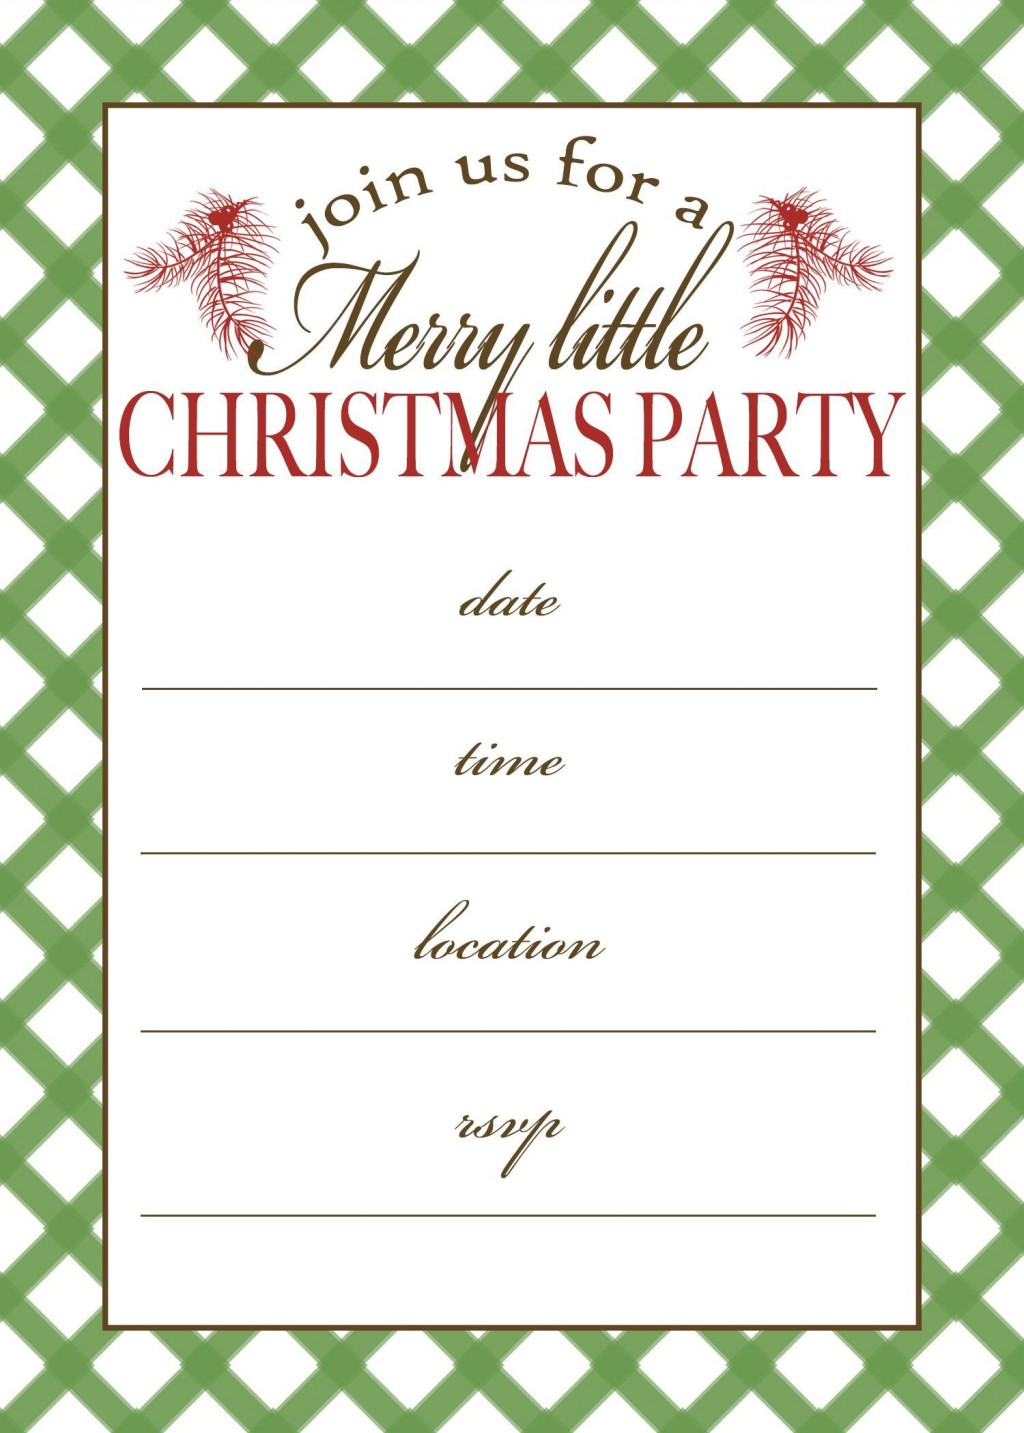 001 Incredible Christma Party Invitation Template Sample  Funny Free Download Word CardLarge